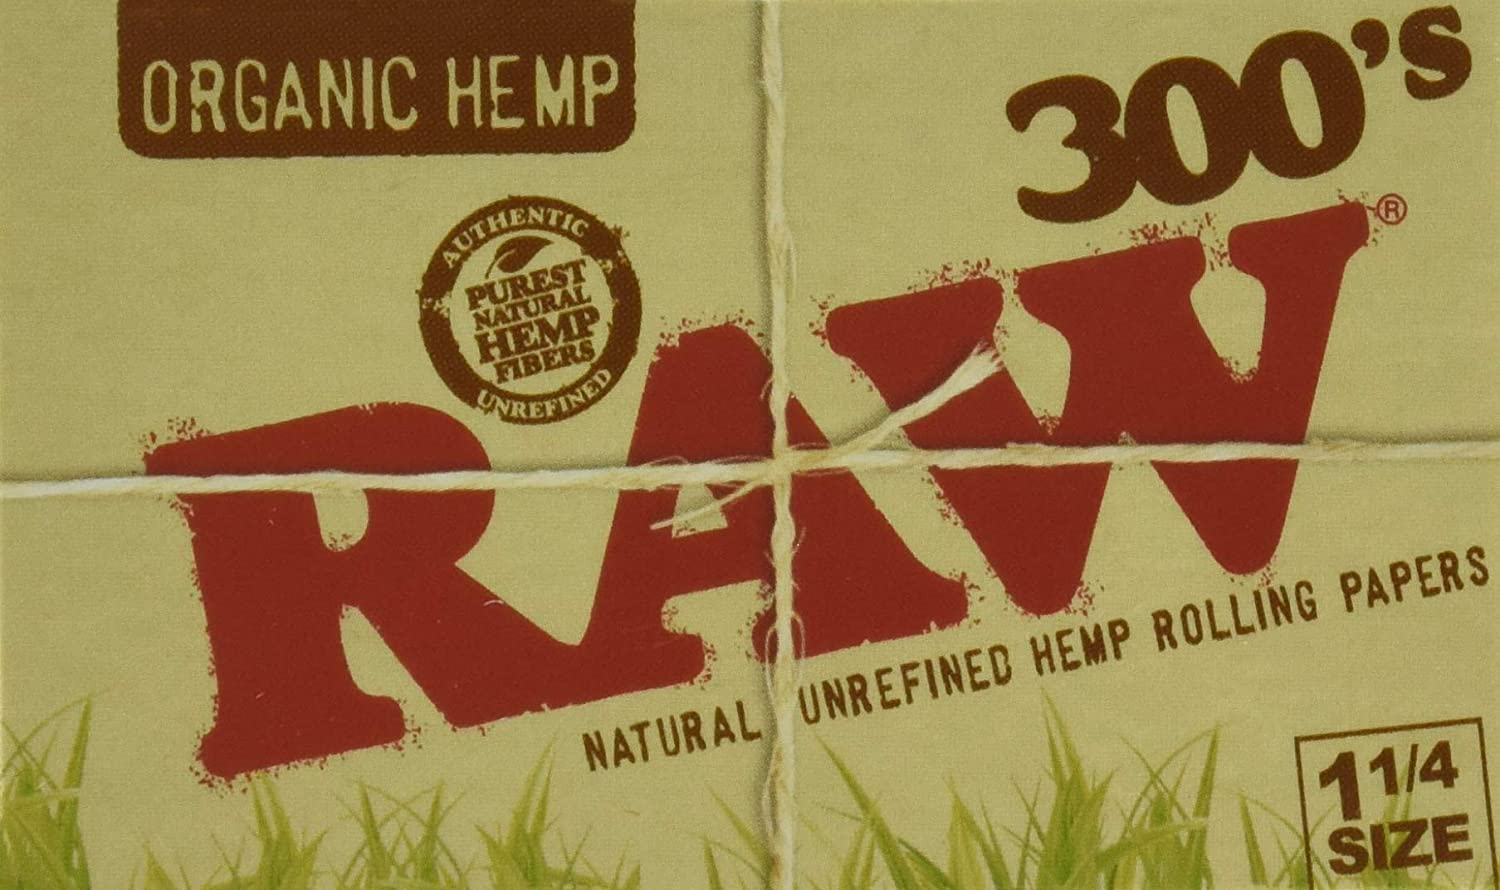 RAW Organic 300 1.25 1 1/4 Size Rolling Papers 1 Pack = 300 Leaves, 300 Count (Pack of 1)